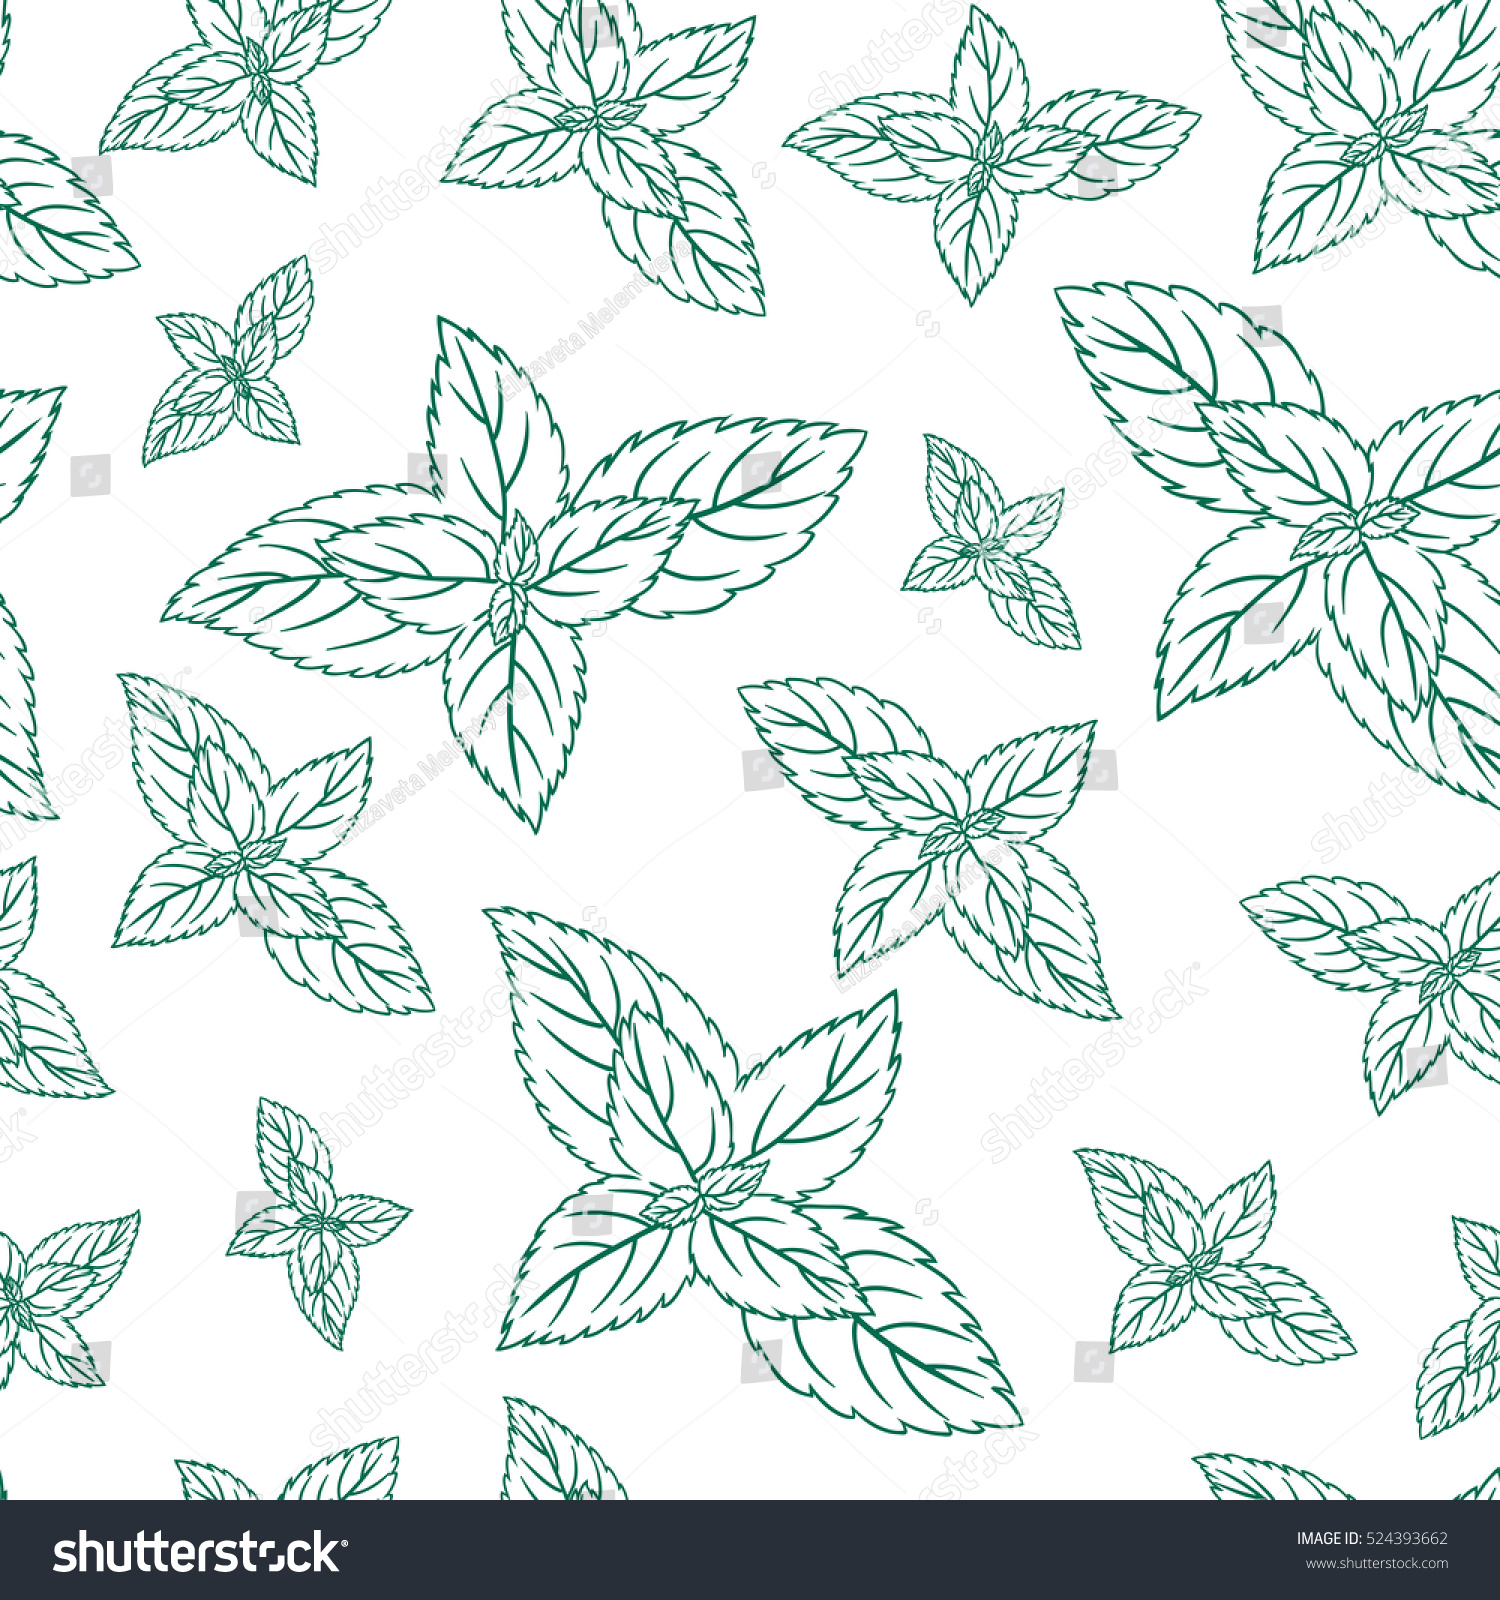 Mint Leaves Peppermint Isolated On White Stock Vector (Royalty Free ...